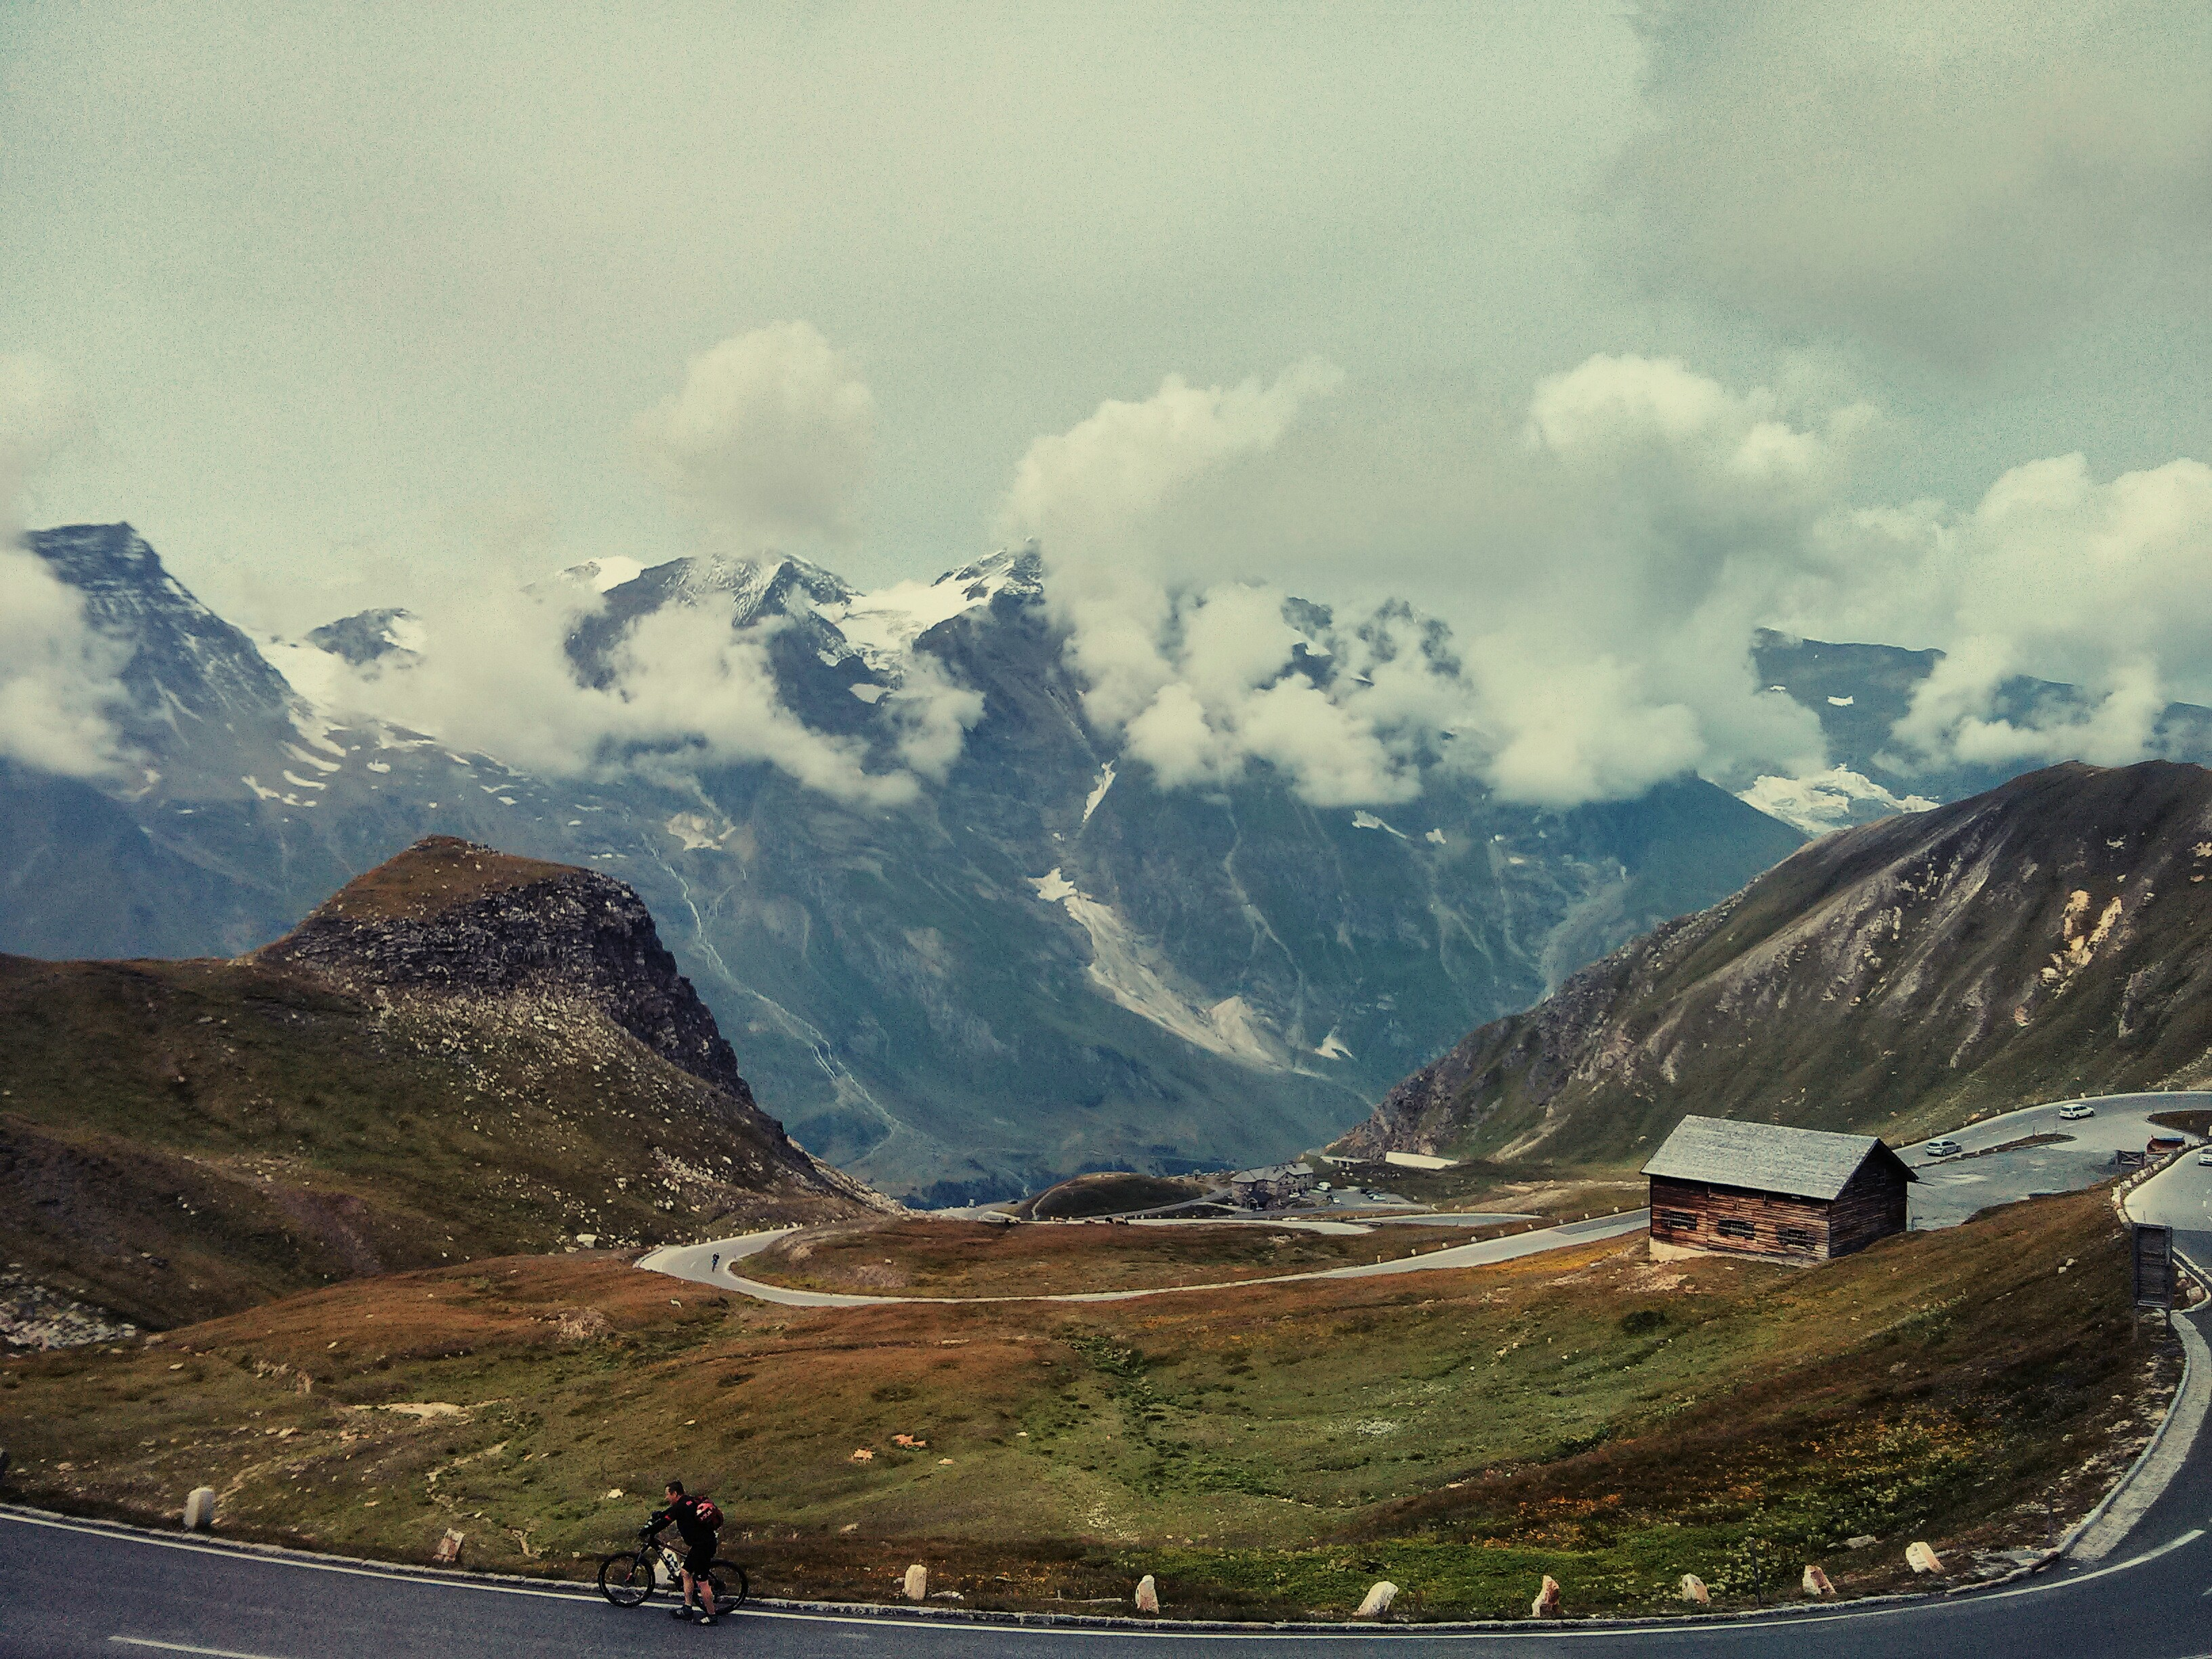 Mountains In Austria, Activity, Austria, Clouds, Cycle, HQ Photo